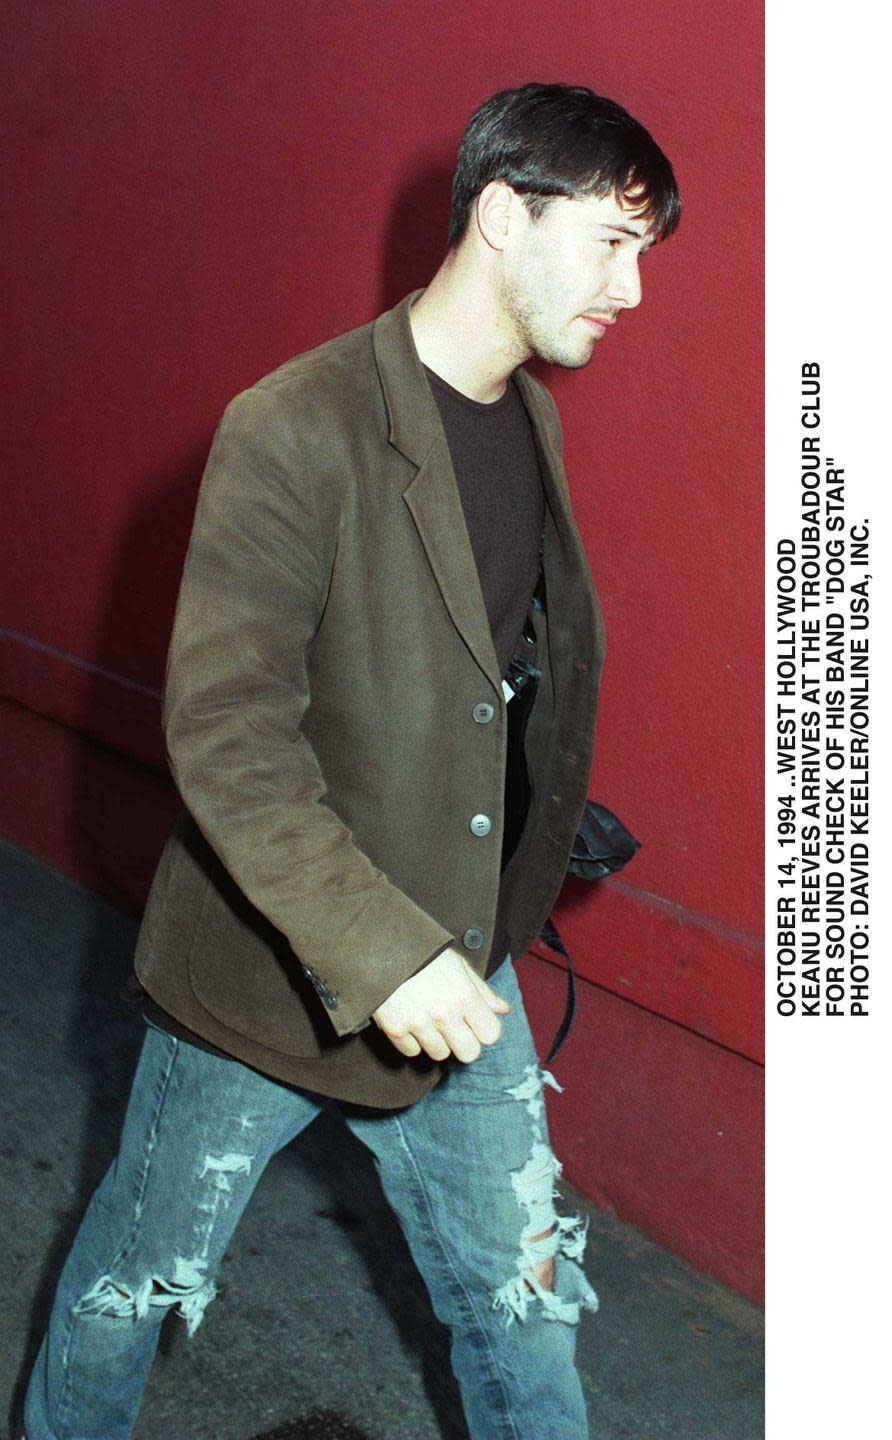 <p>He even looks good in brown???????????</p>